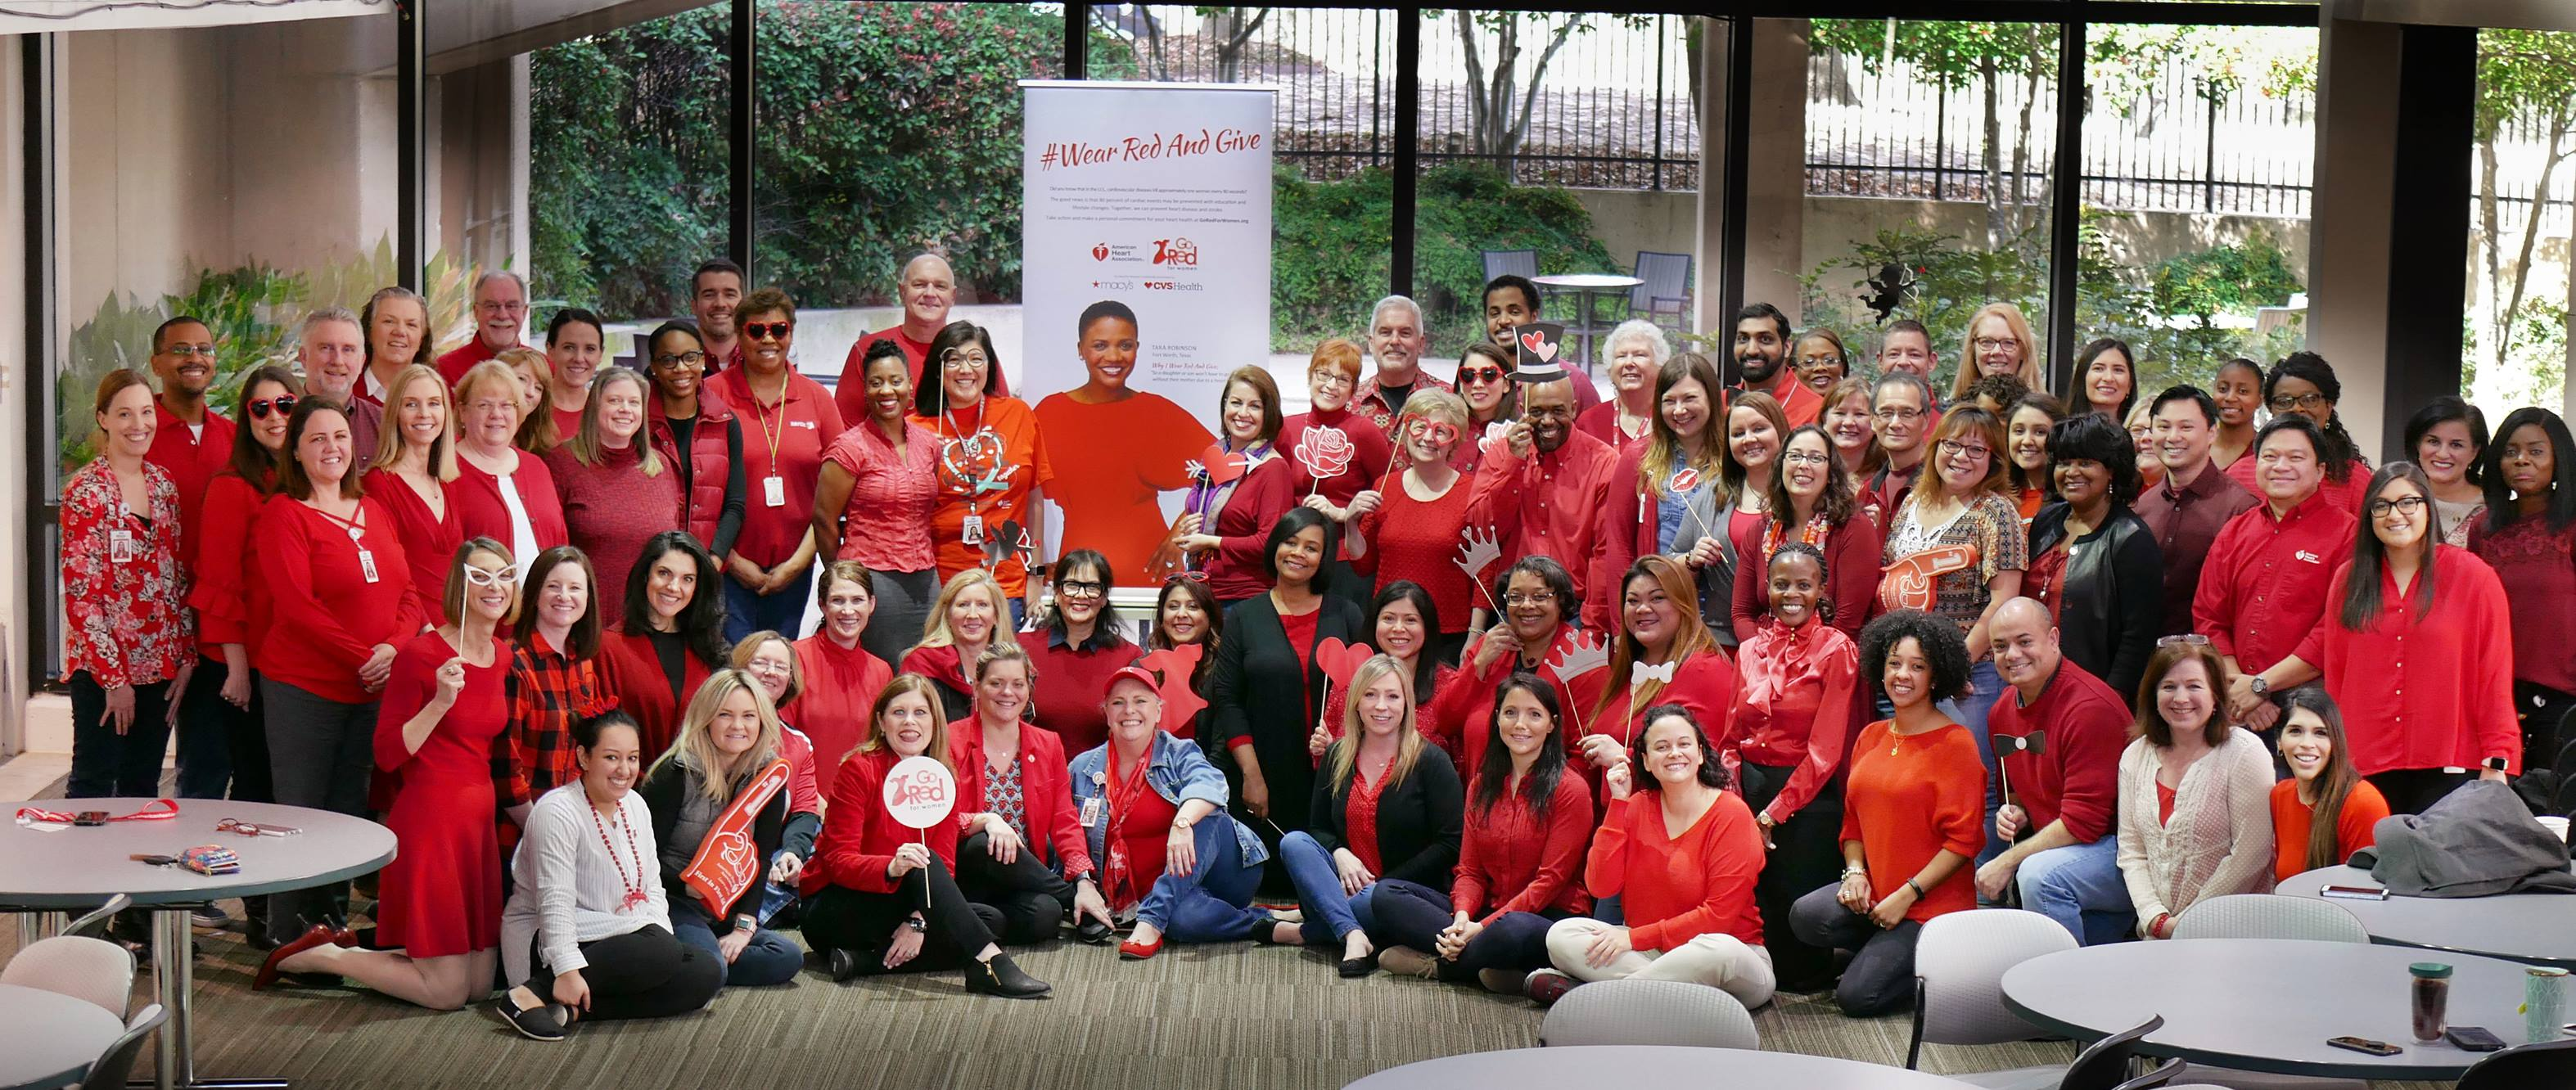 Wear Red and Give Large Gathering of Employees Wearing Red